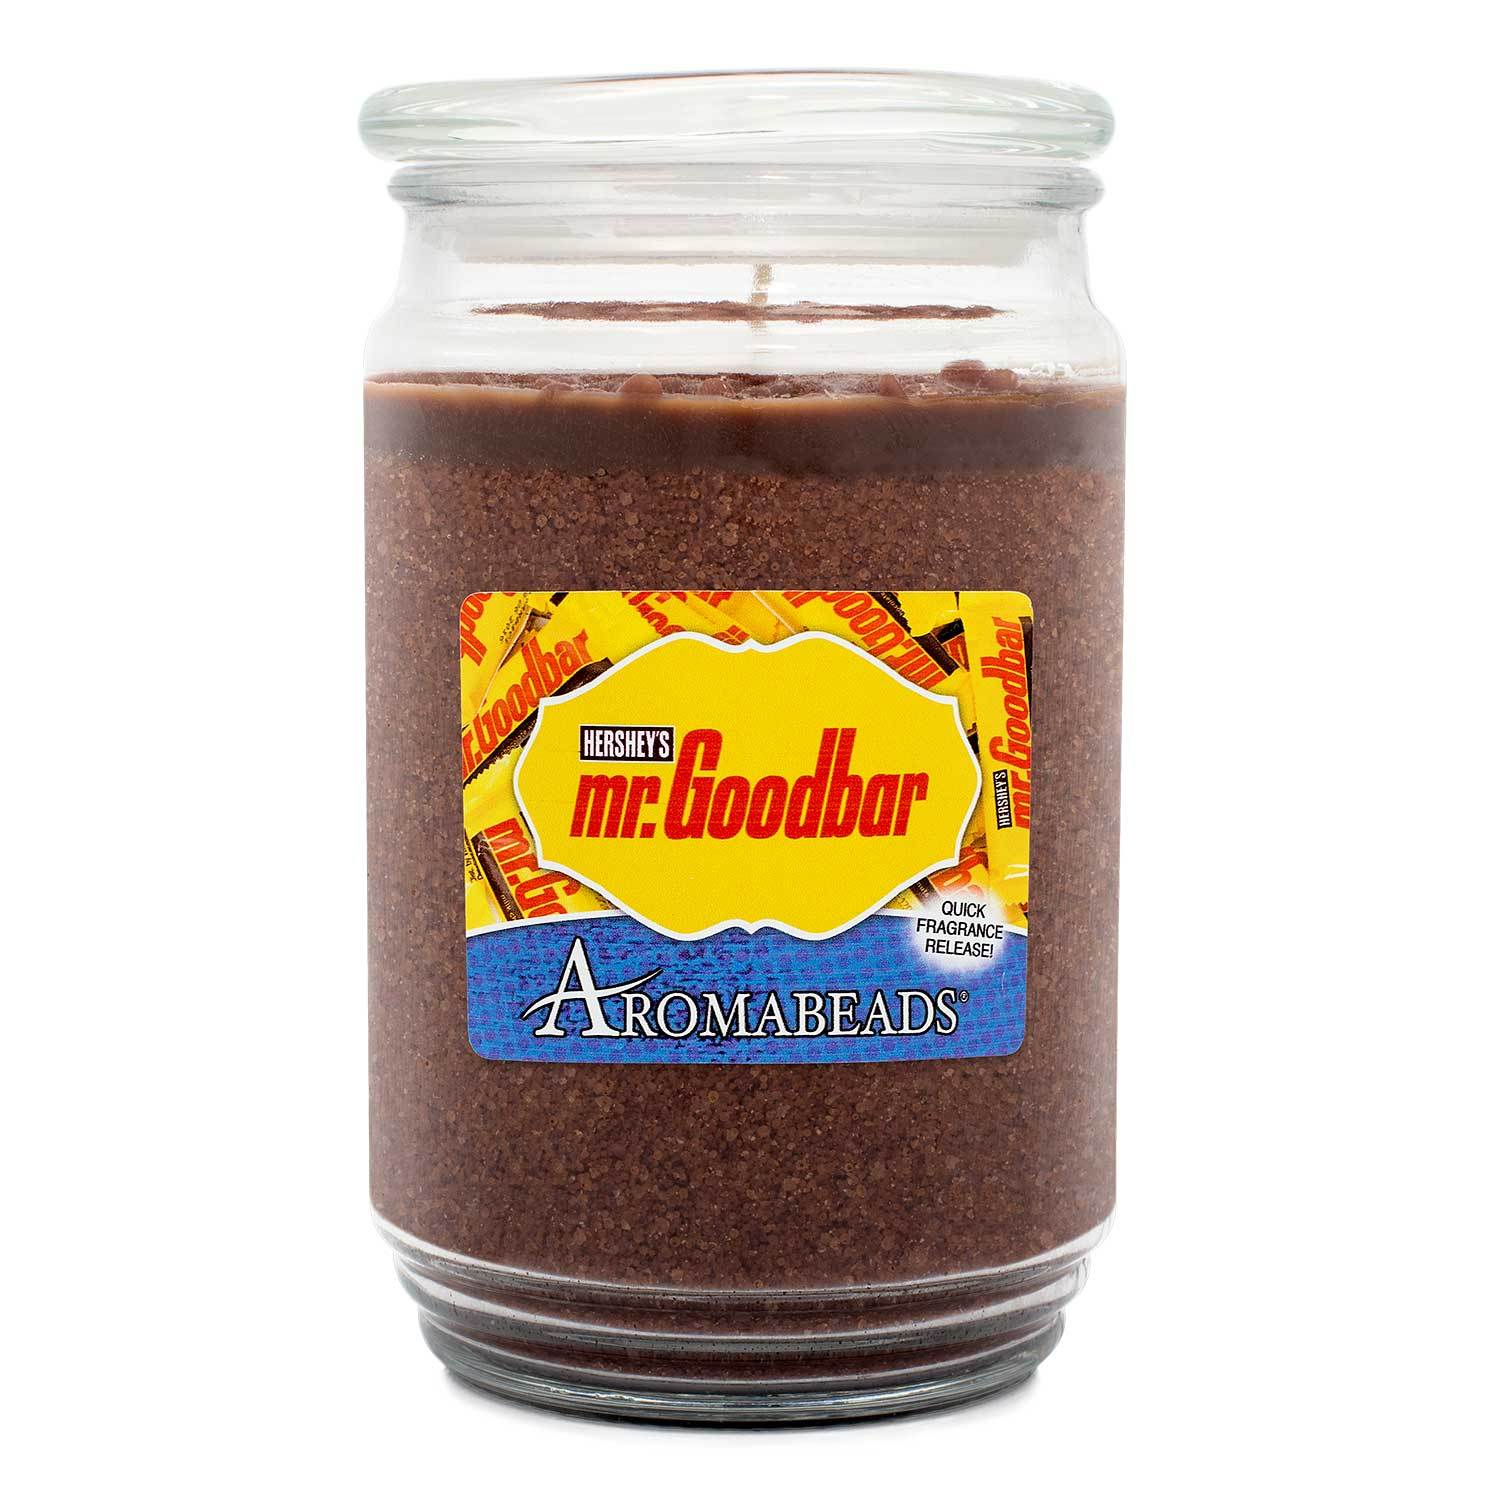 Aromabeads HERSHEY'S Mr. Goodbar Scented Candle